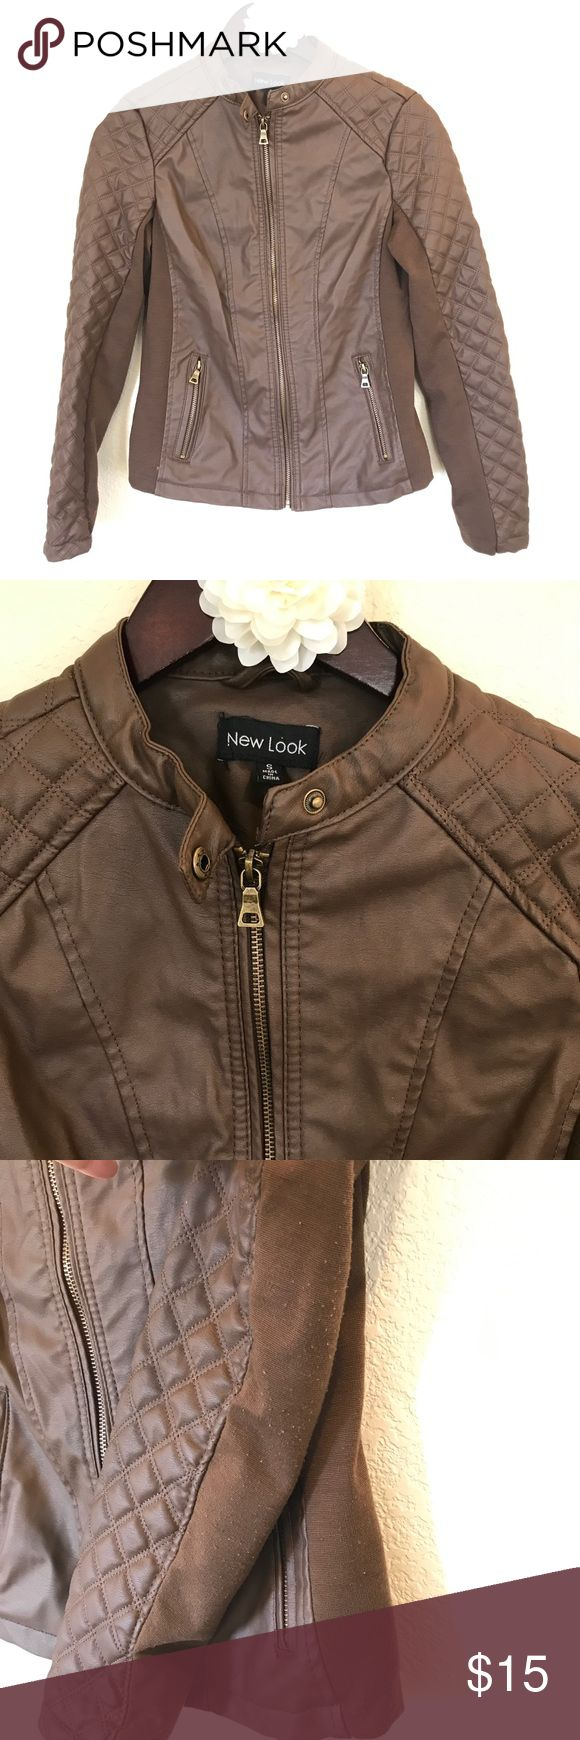 Brown faux leather jacket bomber quilted small Cute little brown faux leather jacket. There is some pilling on the inner arms where it is just regular fabric, but I haven't taken the fabric shaver to it yet, I bet it will clean up nicely. Size small. New Look Jackets & Coats